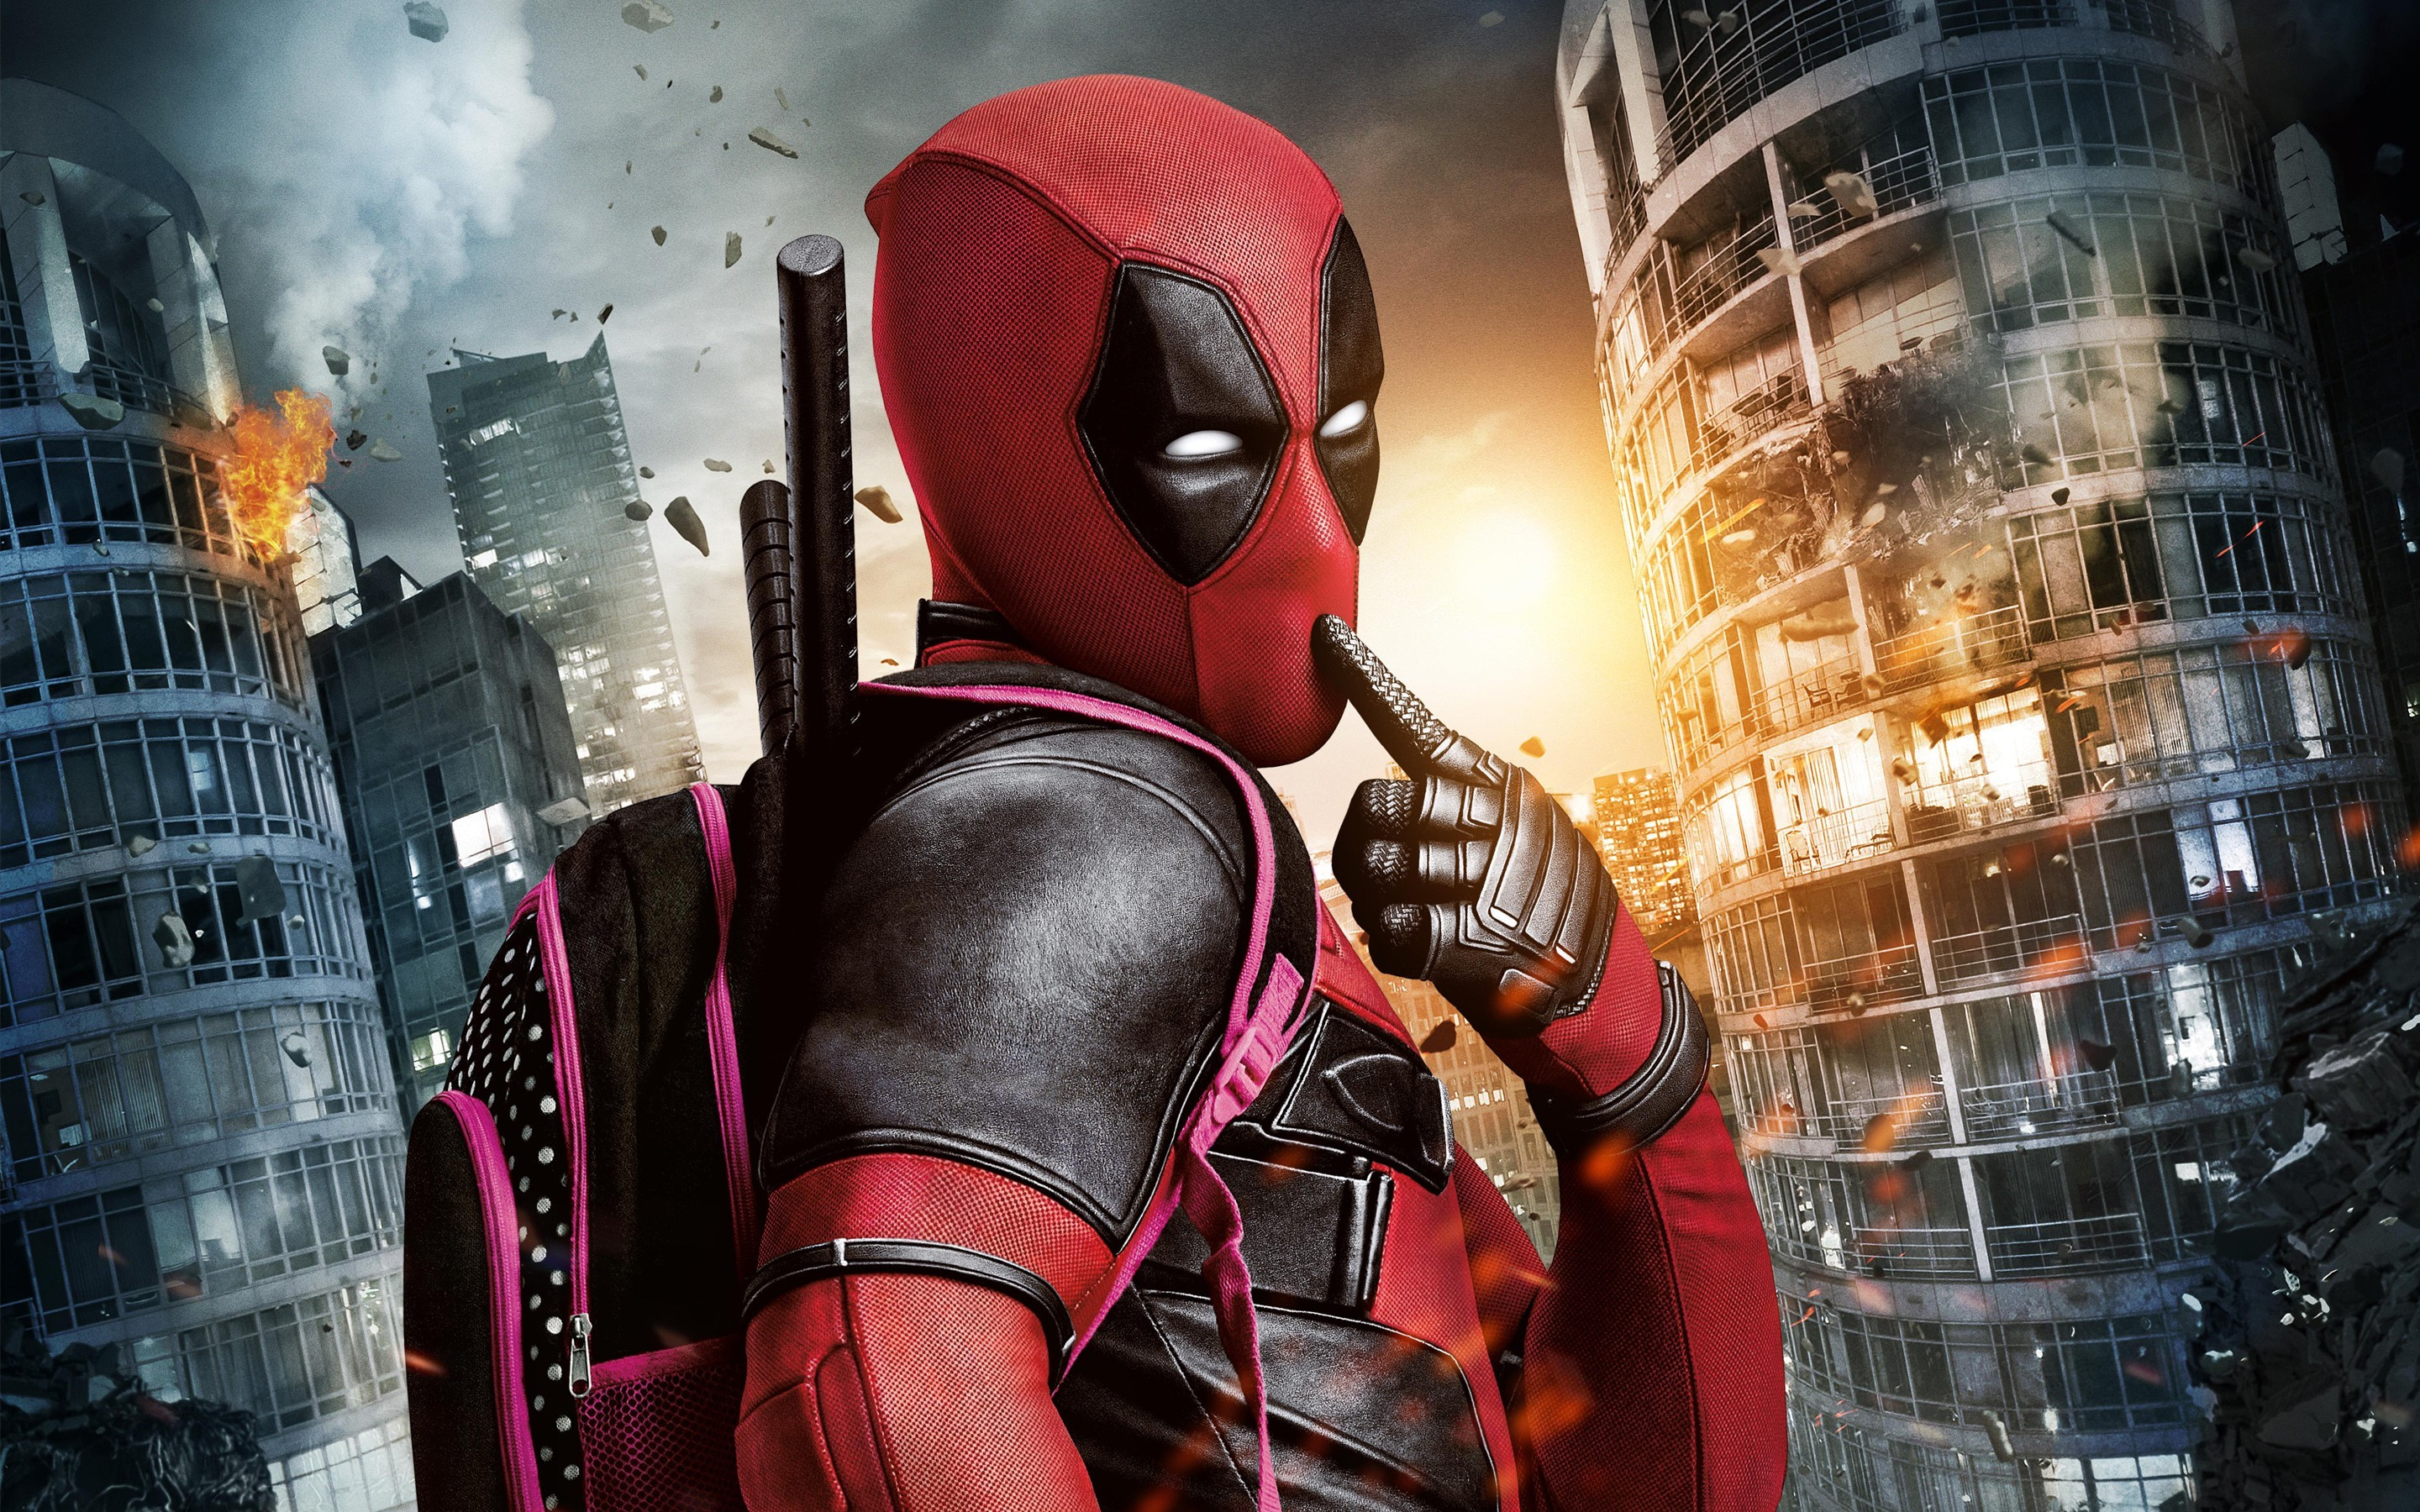 Deadpool Hd Wallpaper X Windows Xp Pic Hwb1410   Deadpool Full Hd